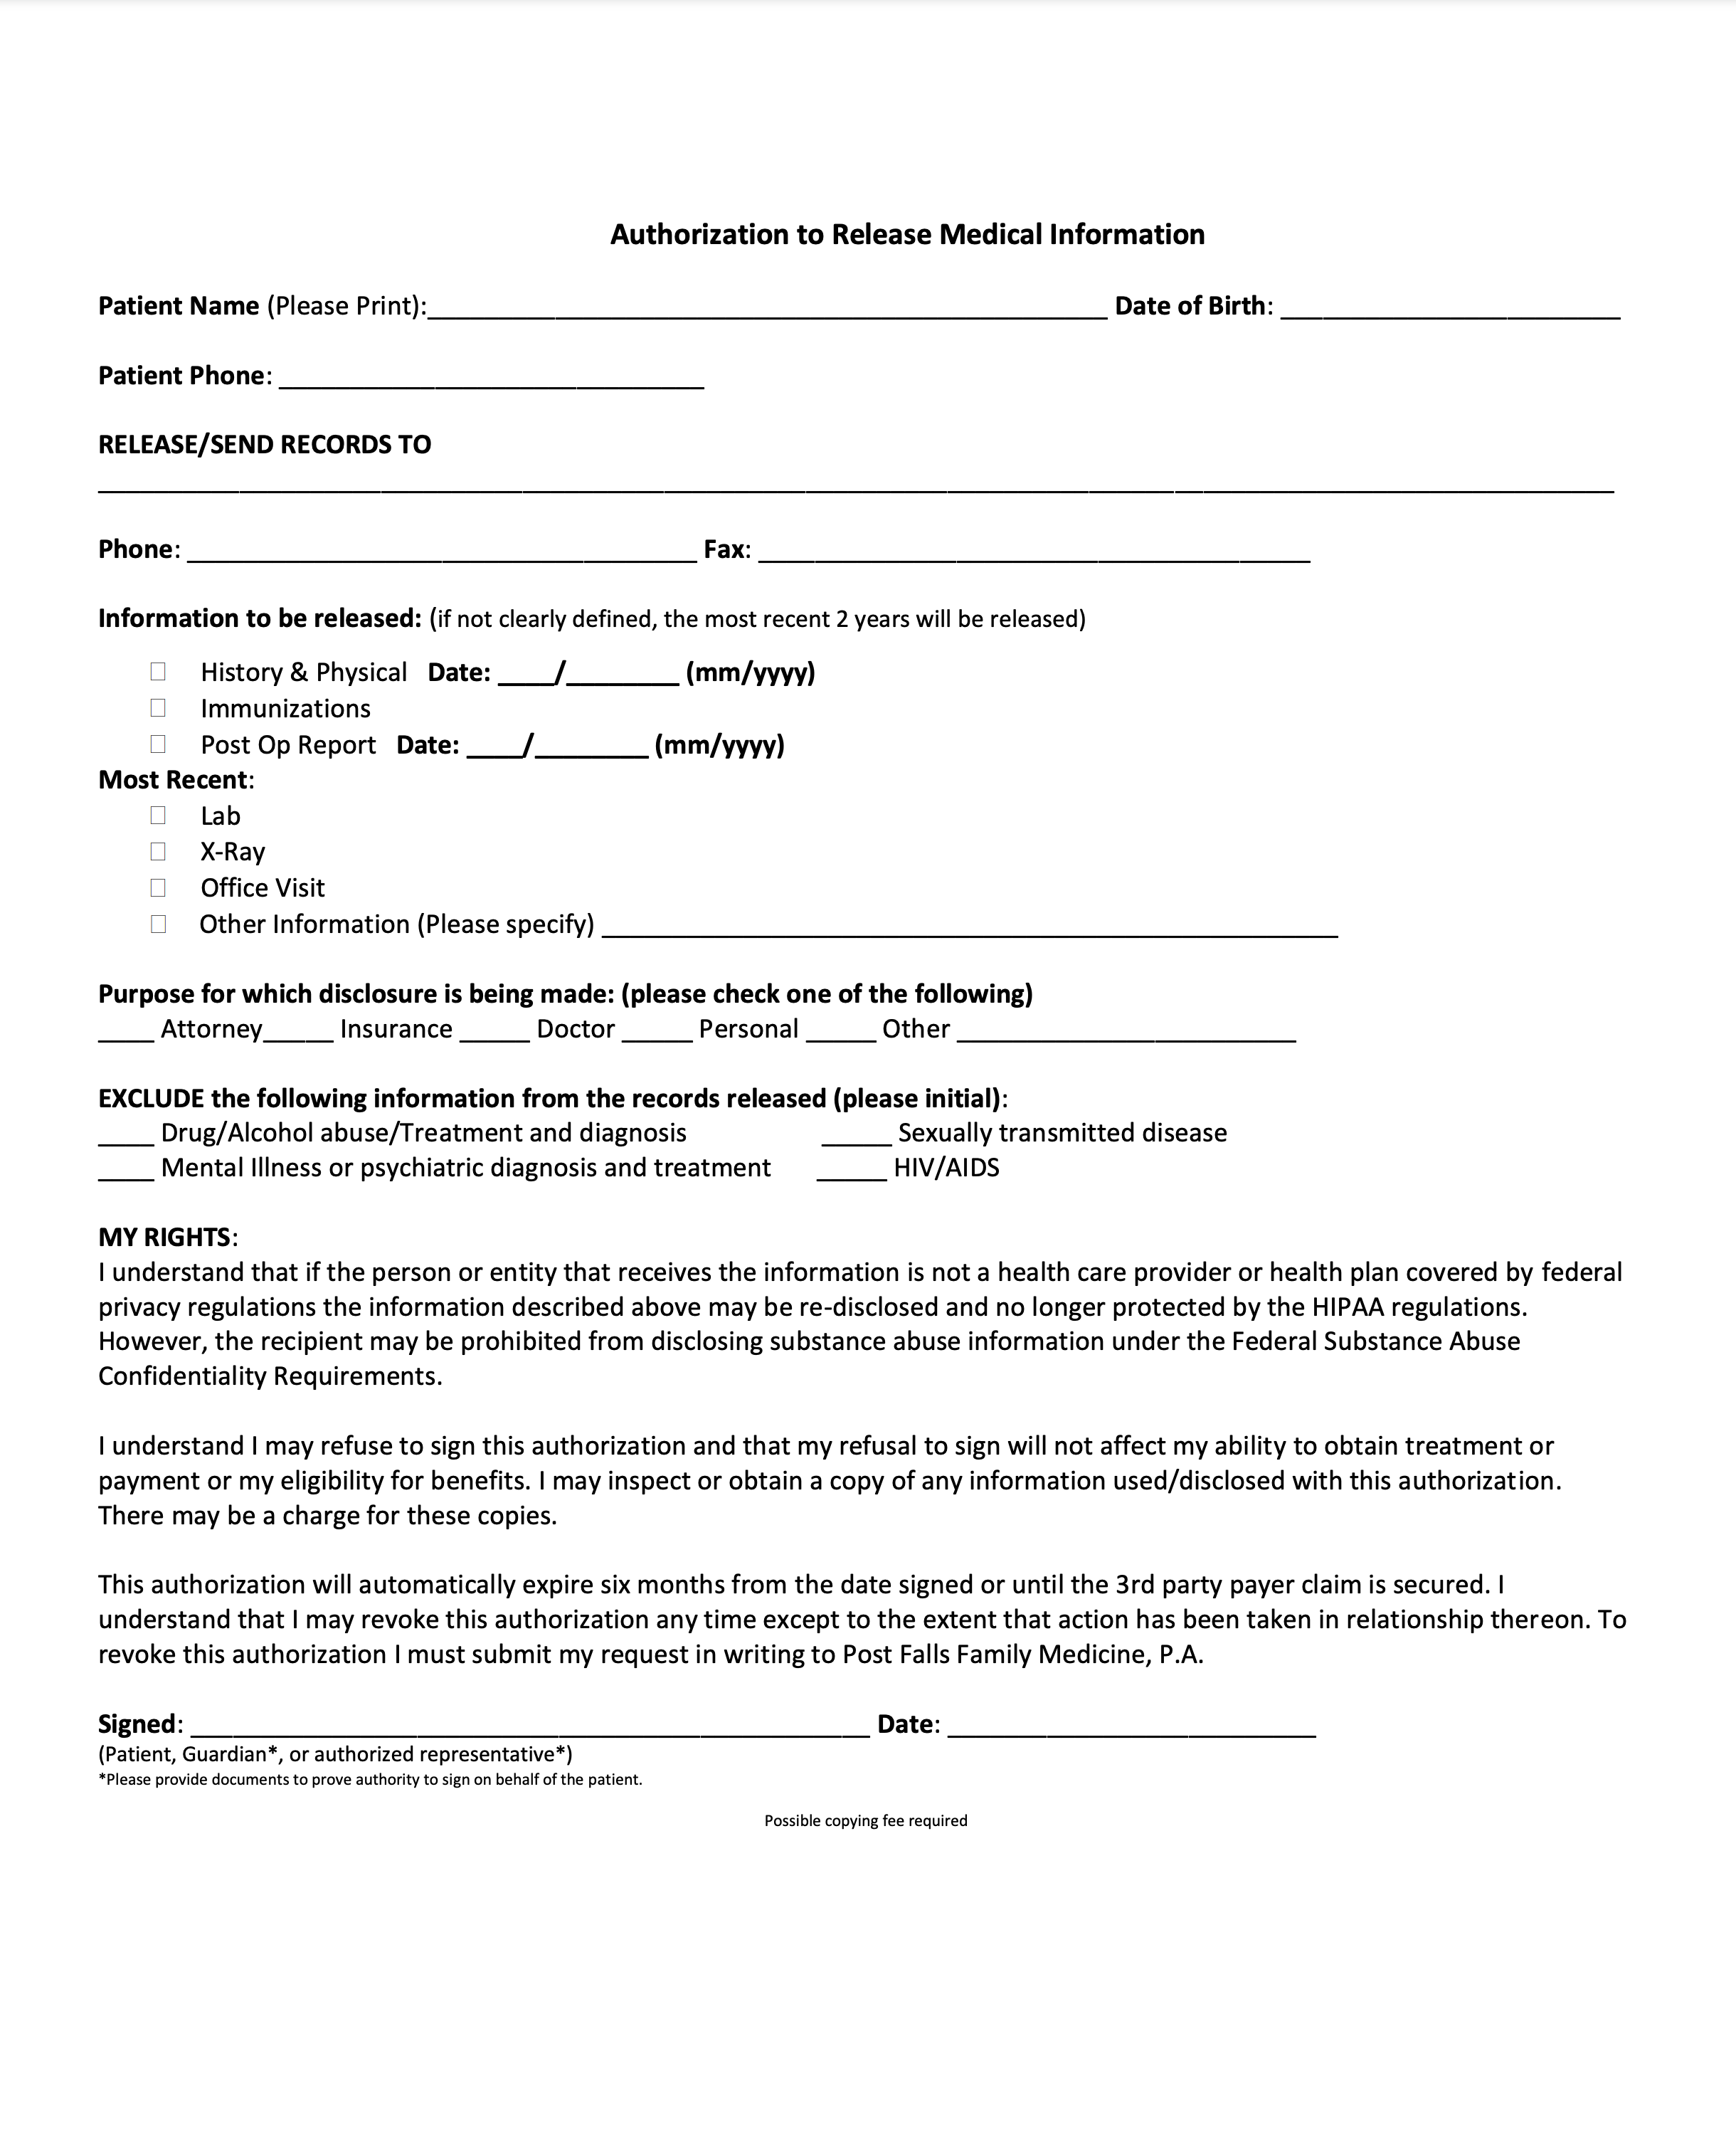 Authorization-to-RELEASE-Medical-Information-NEW-pdf